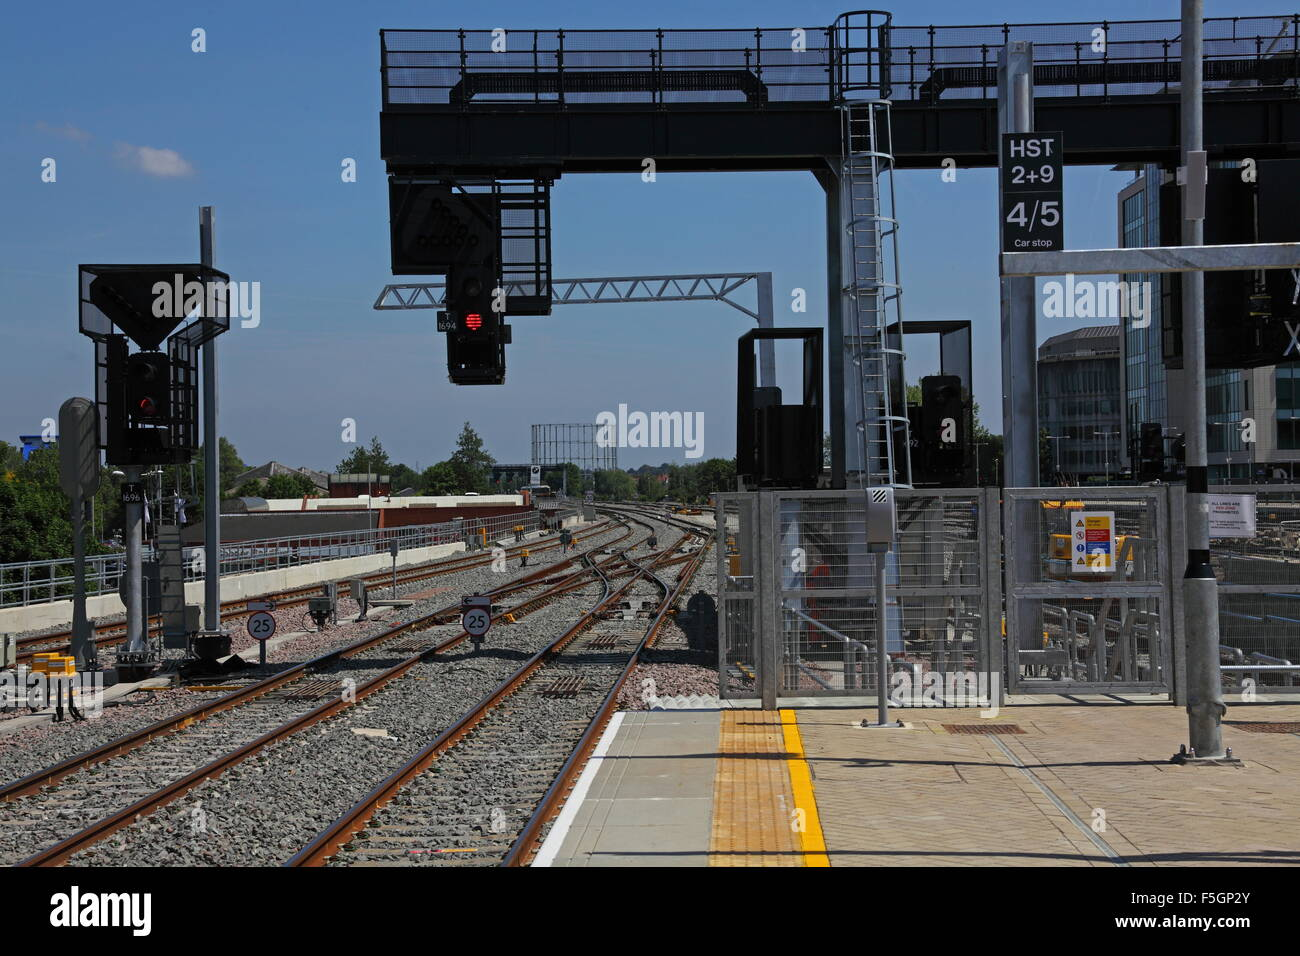 Newly installed overhead signal gantry with a 4 aspect signal for forward movements of trains along the main line - Stock Image